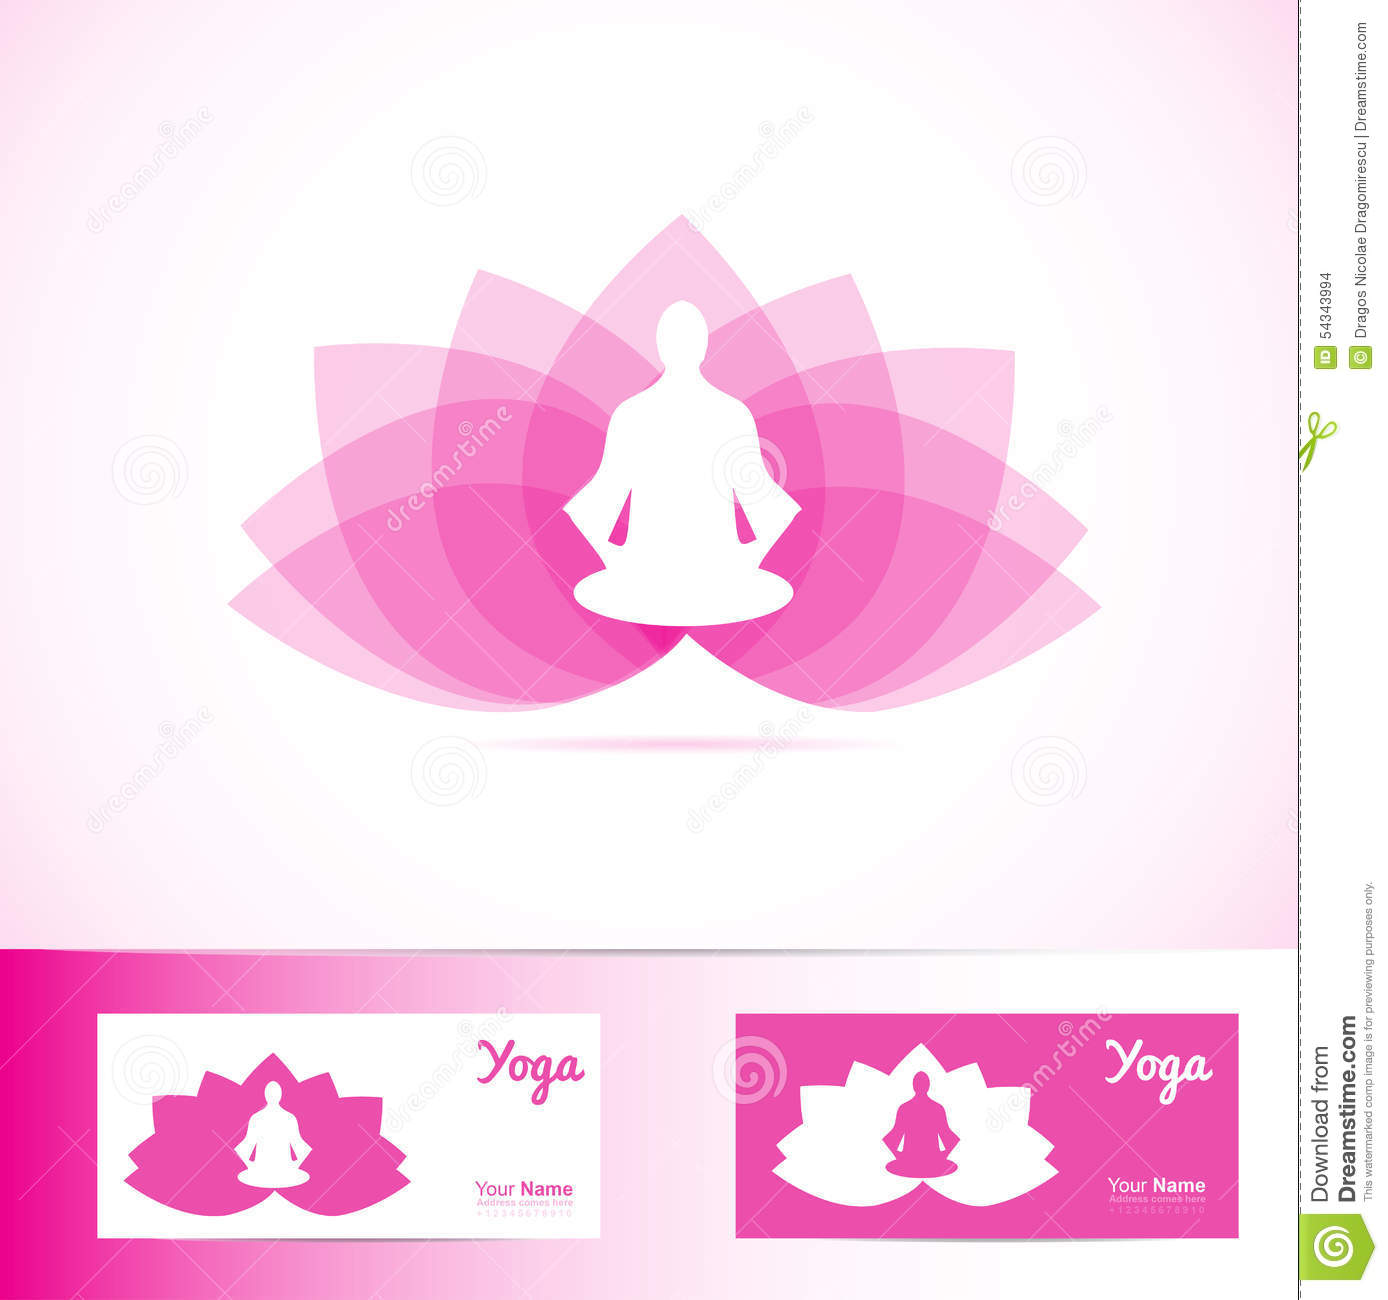 yoga lotus flower meditation man logo shape stock vector image